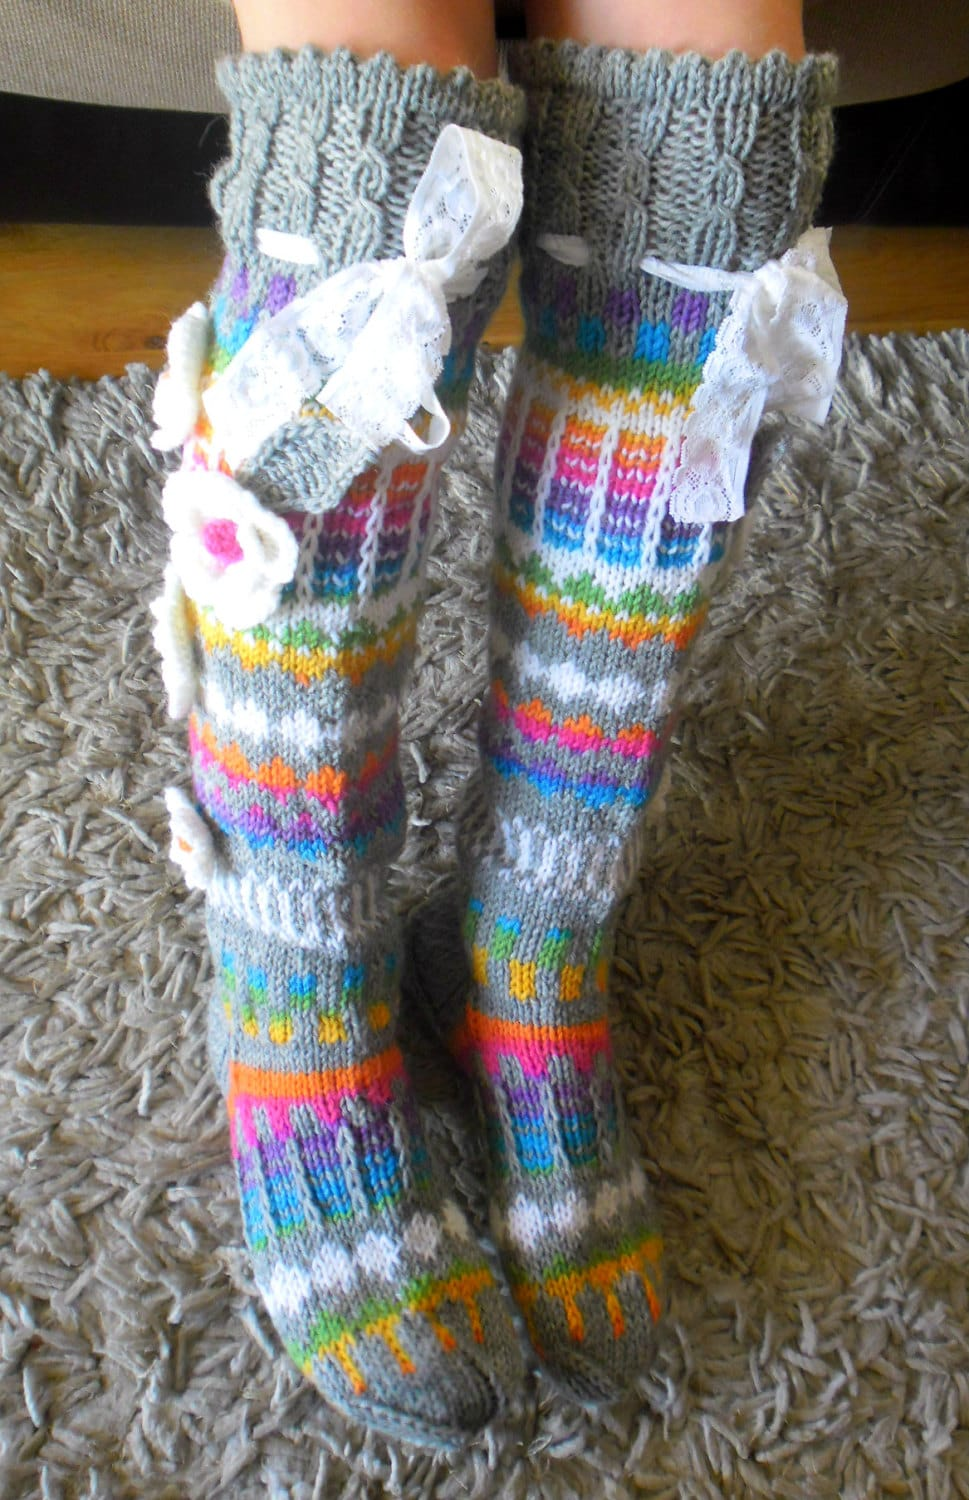 Hand knit knee socks. House knee socks. Flower knee socks.